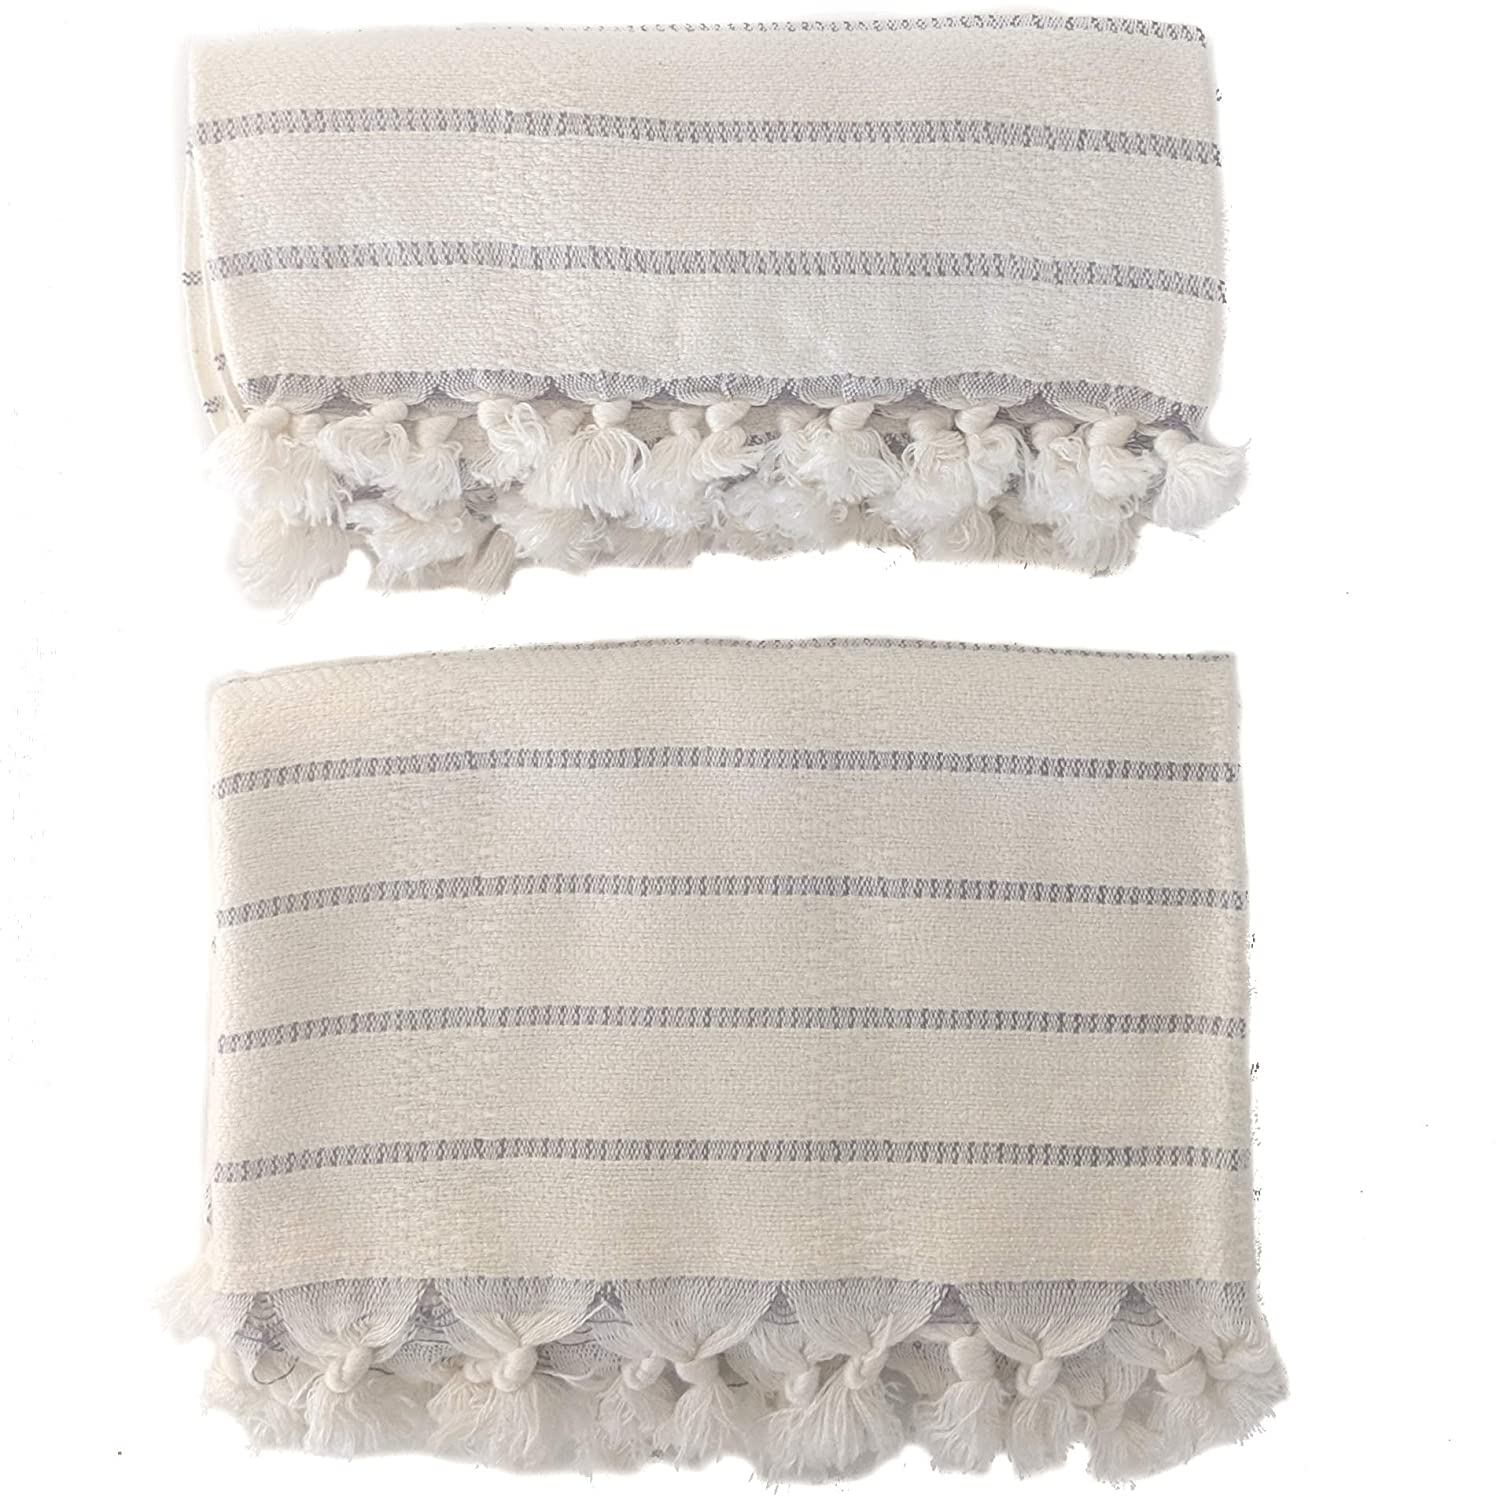 Turkish hand towels - Come explore Serene Decor Slow Living as well as Small Thoughtful Changes at Home.